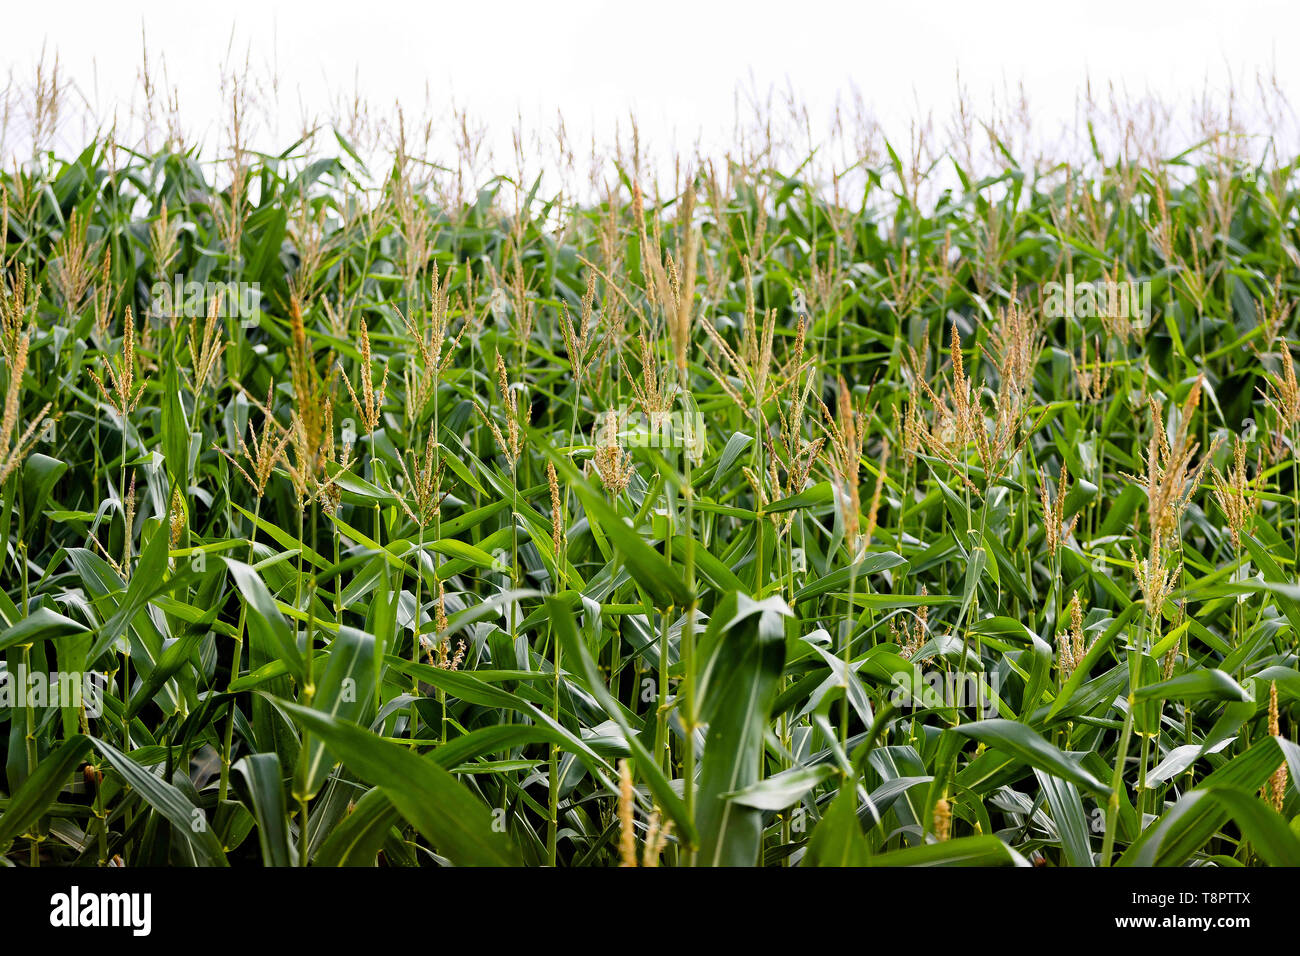 May 12, 2019 - GlóRia De Dourados, Mato Grosso do Sul, Brazil - Full grown maize plants seen in a corn field.Agriculture in Brazil is one of the main bases of the country's economy. Agriculture is an activity that is part of the primary sector where the land is cultivated and harvested for subsistence, export or trade. Credit: Rafael Henrique/SOPA Images/ZUMA Wire/Alamy Live News Stock Photo